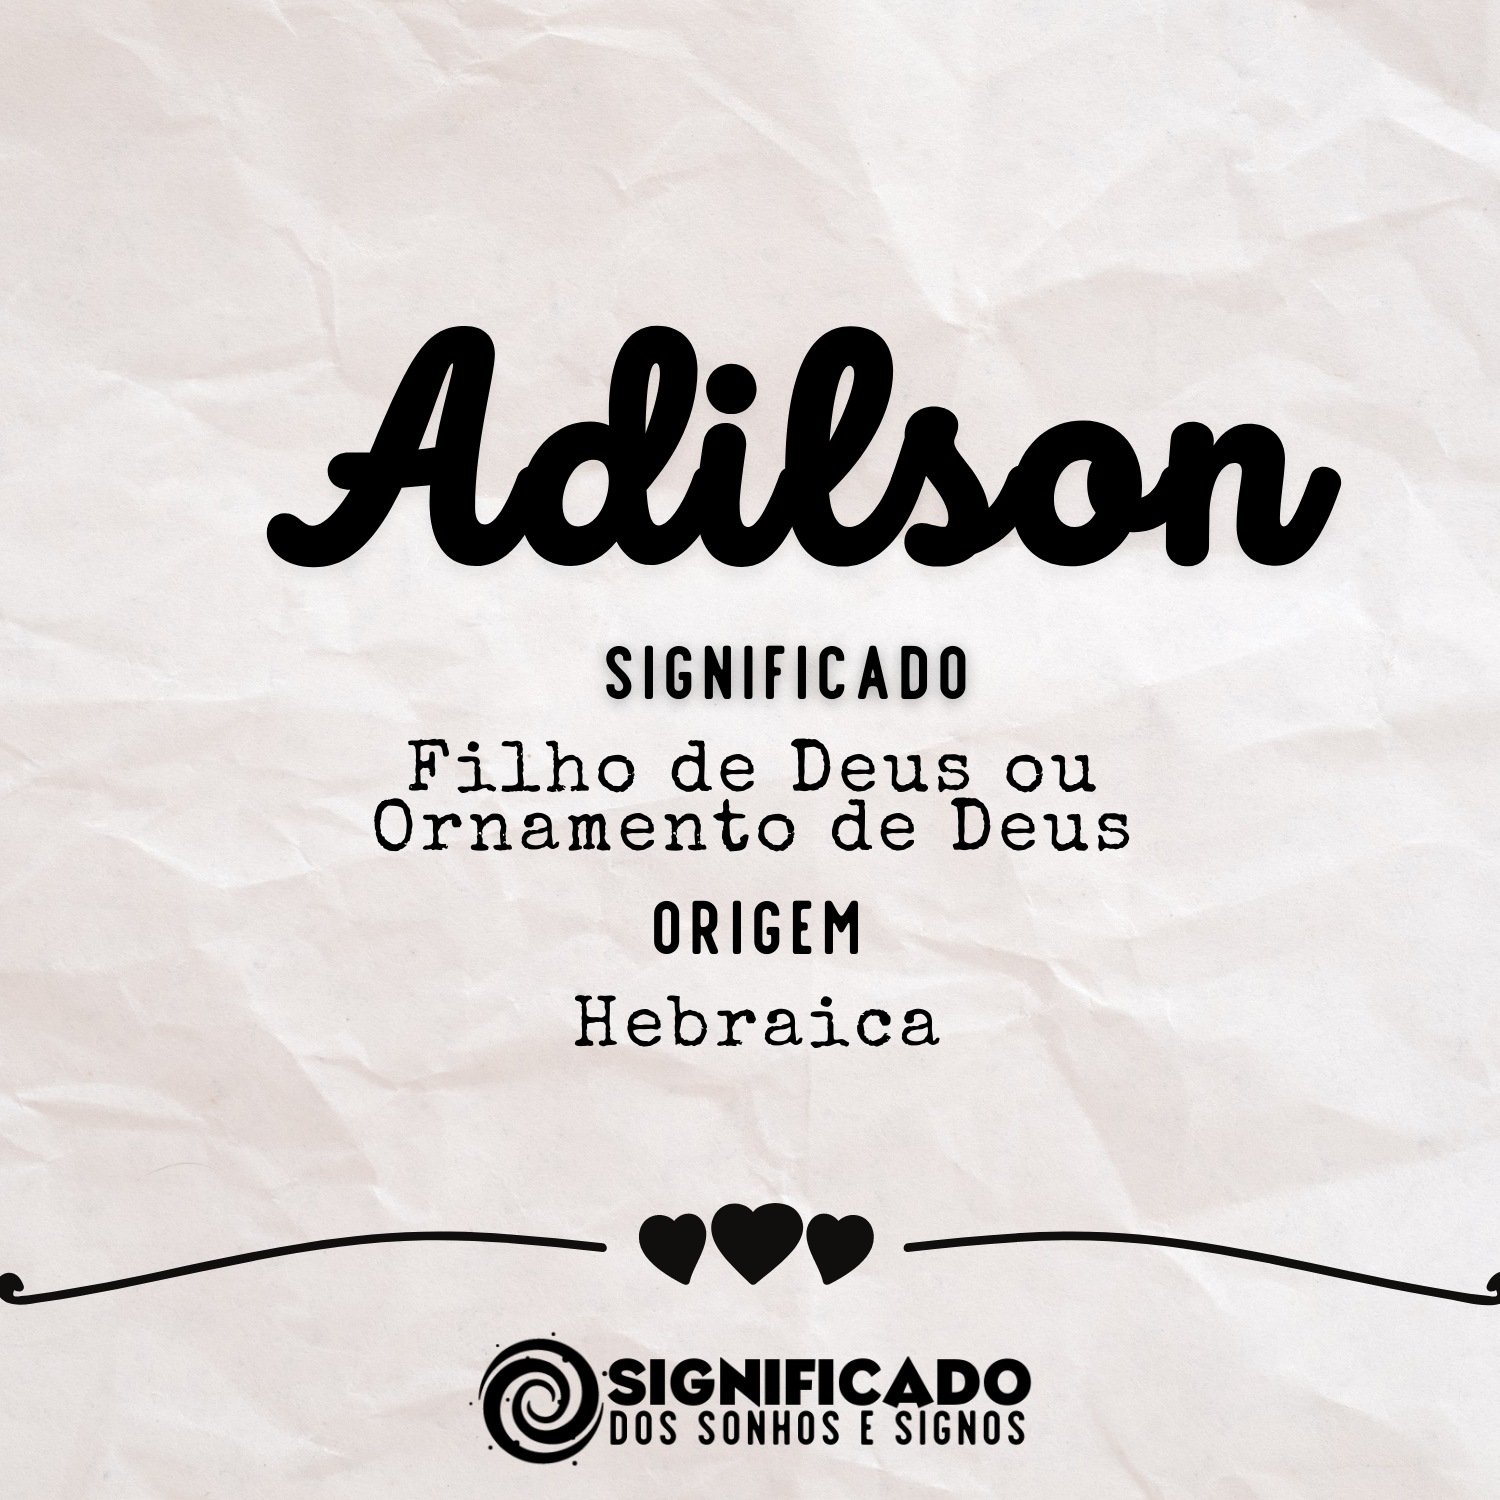 Significado do nome Adilson